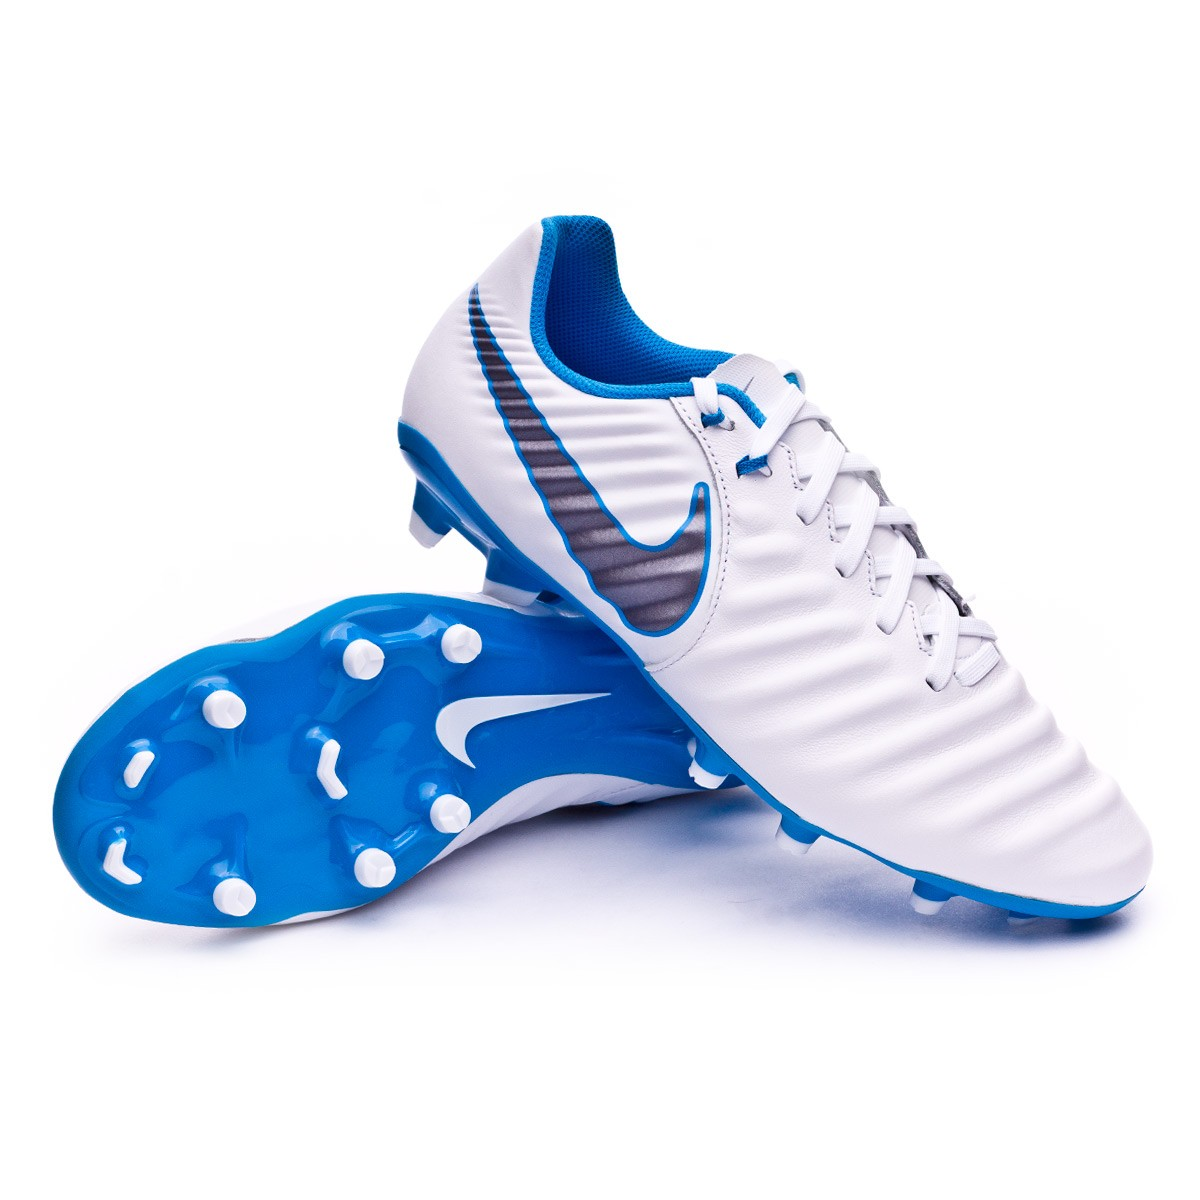 cheaper d431c 7e7ed Nike Tiempo Legend VII Academy FG Football Boots